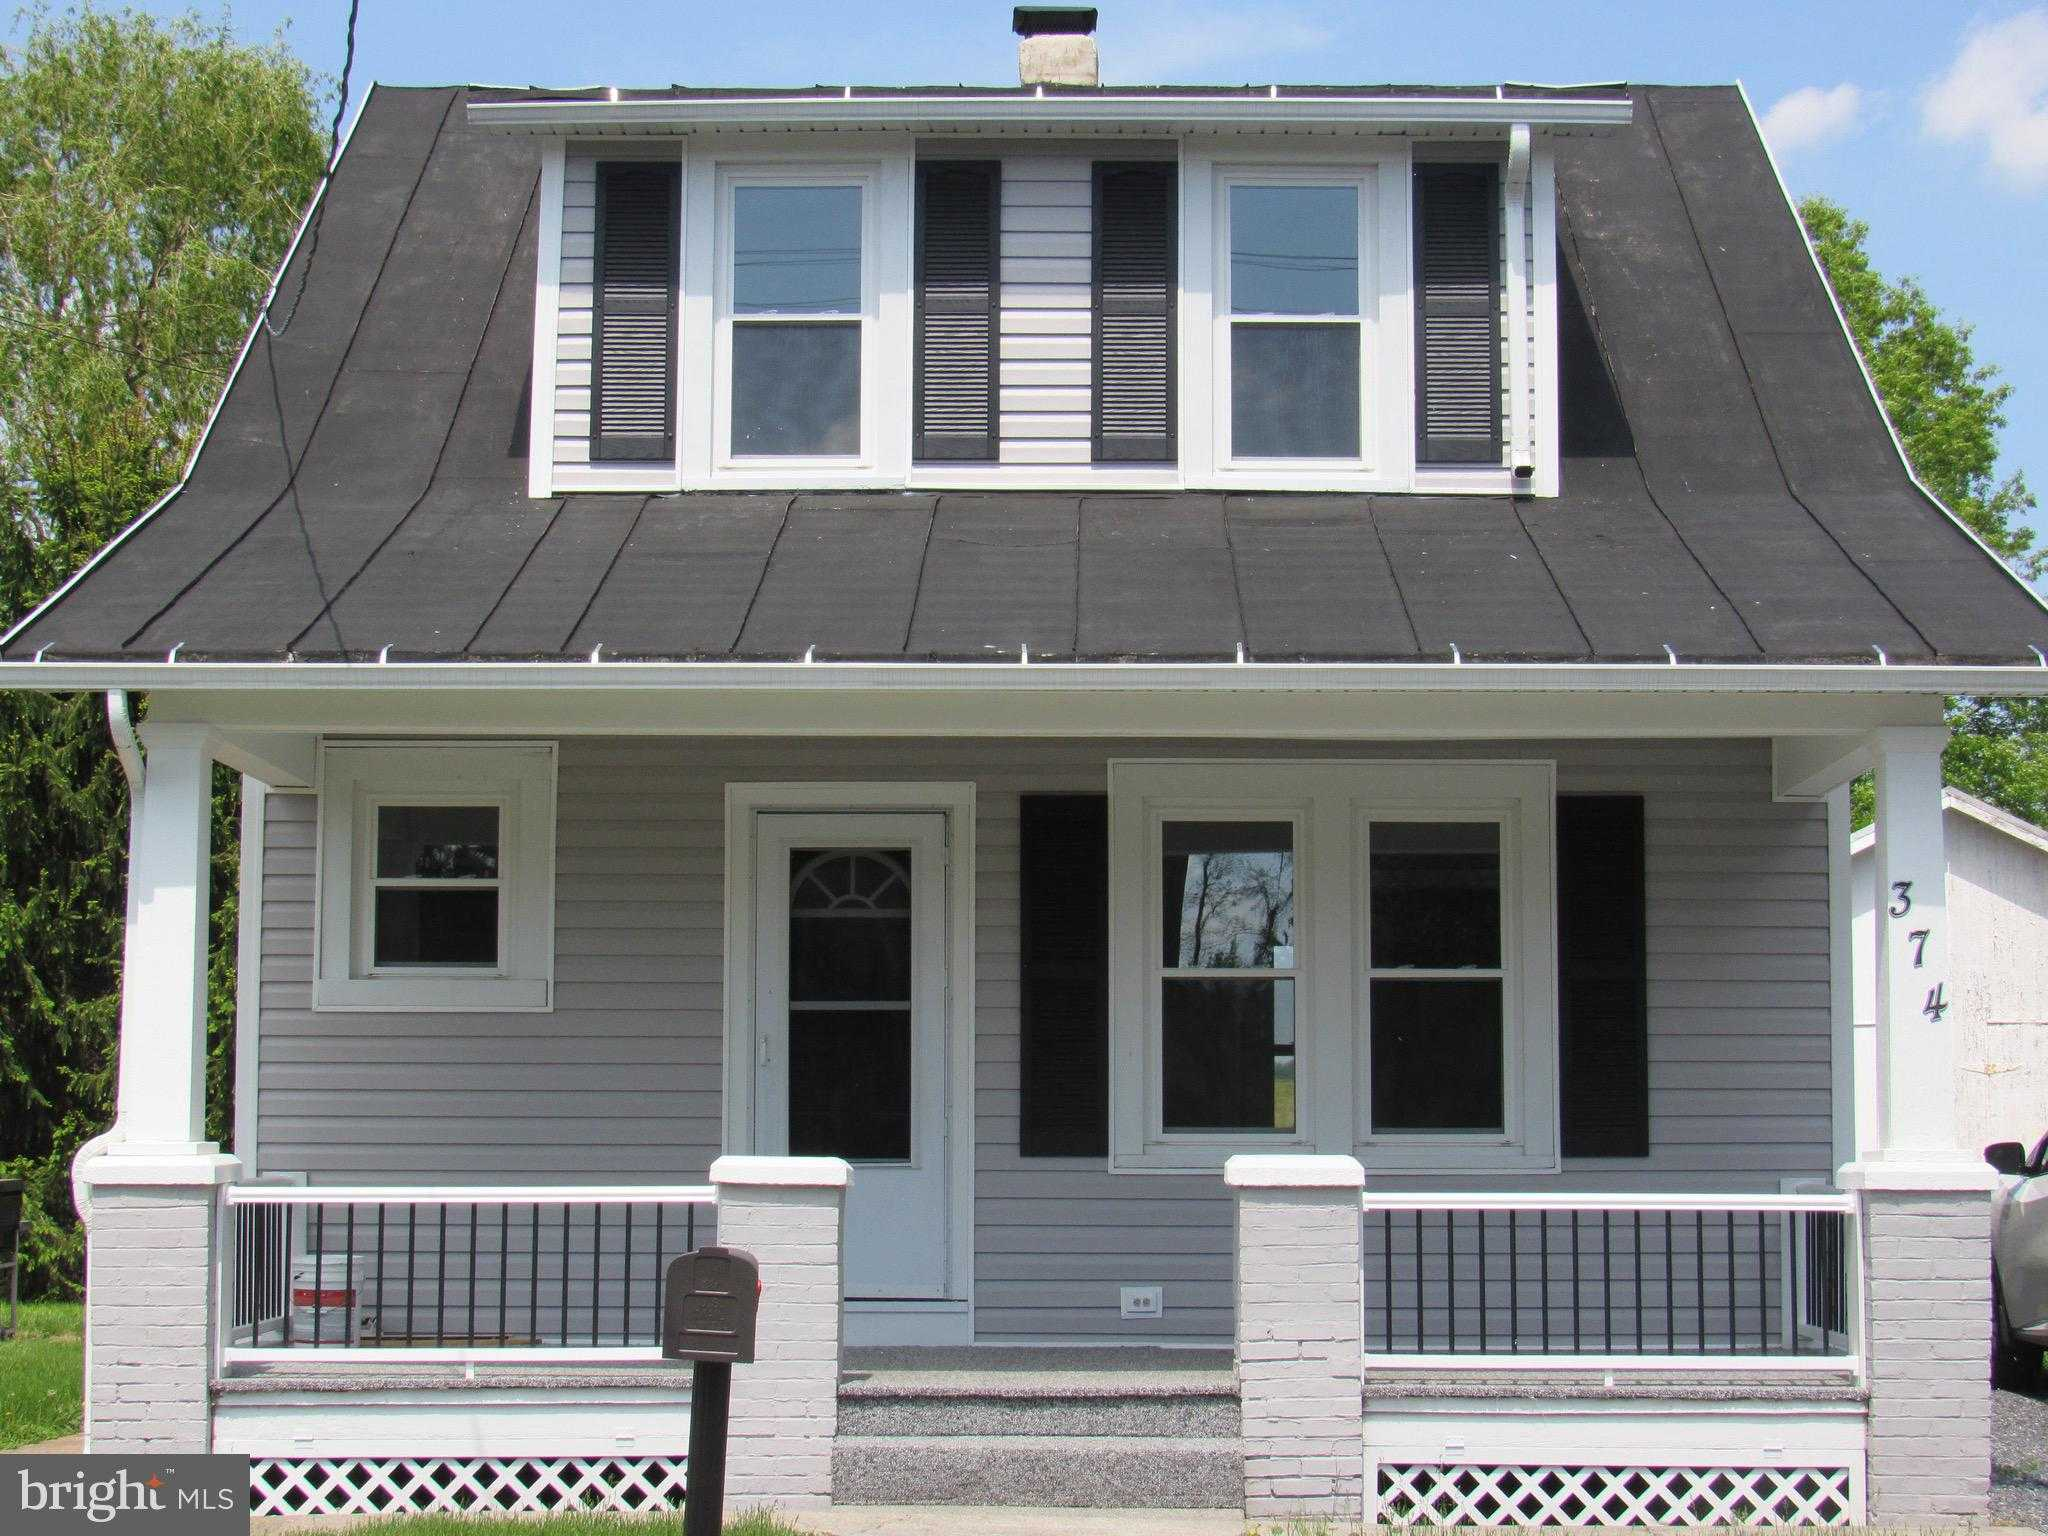 $138,500 - 3Br/1Ba -  for Sale in None Available, Lewisberry